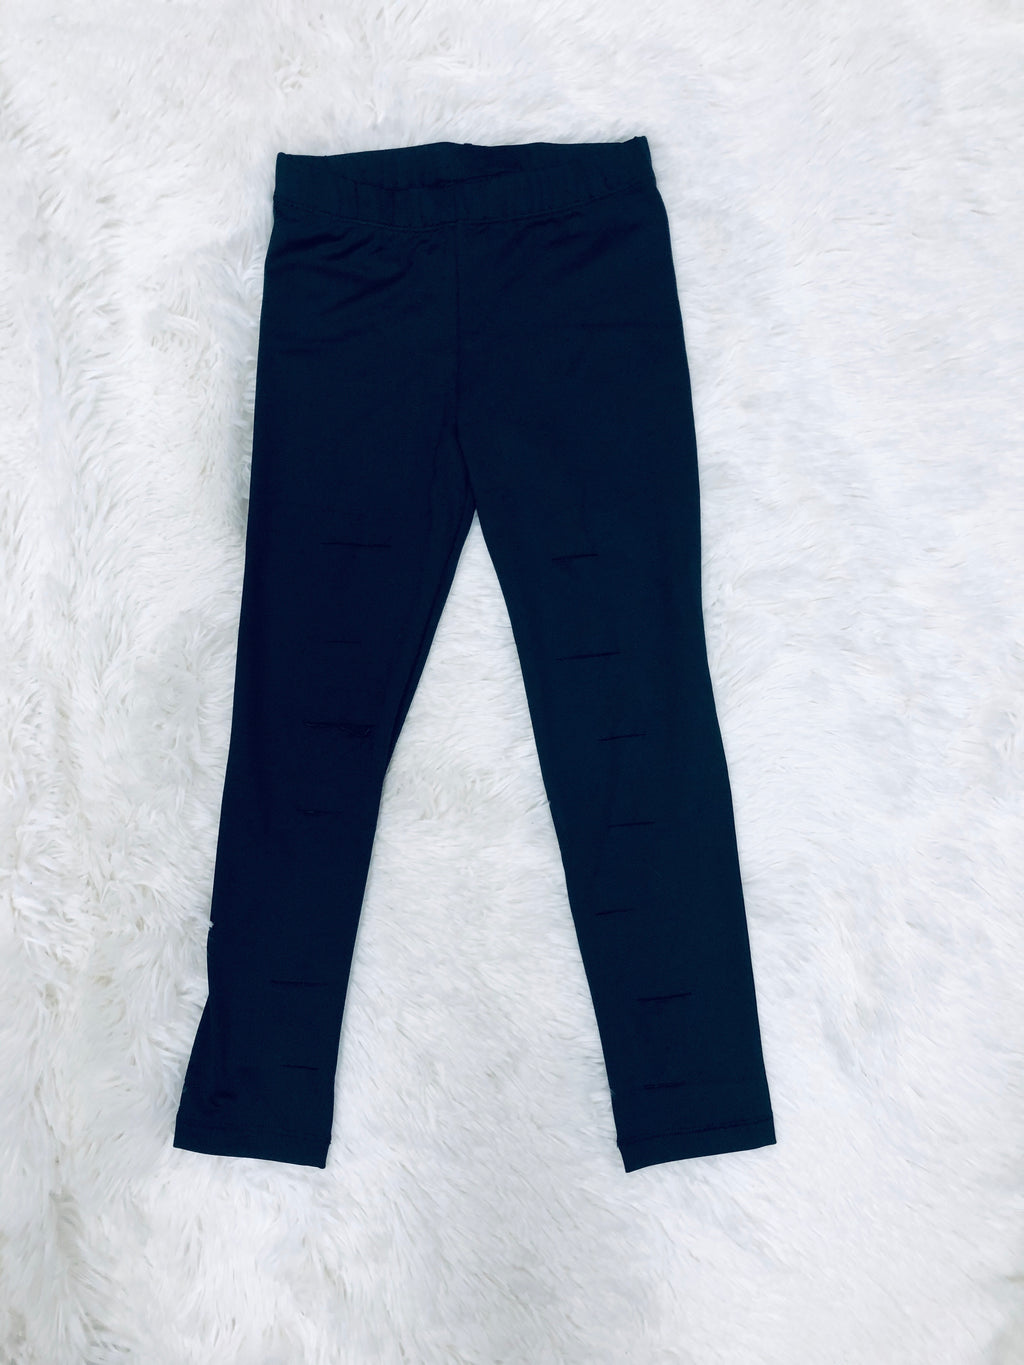 Kid's Slit Black Leggings